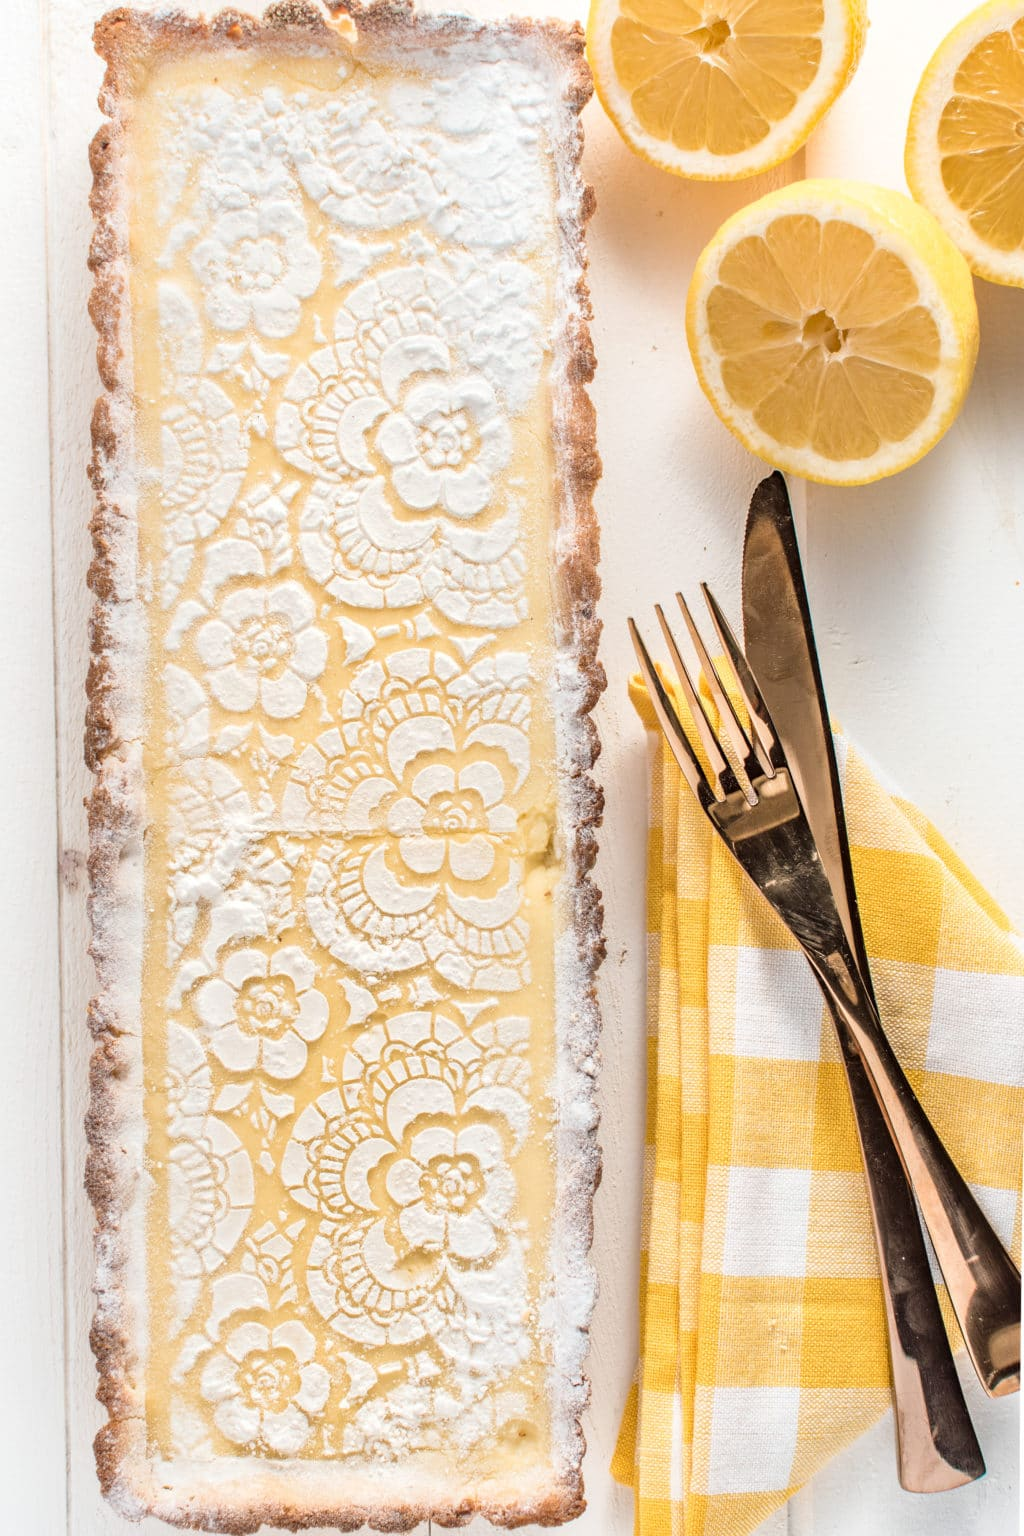 a top down photo of a rectangular lemon tart, with a gingham yellow napkin and fresh lemons on a white wooden background